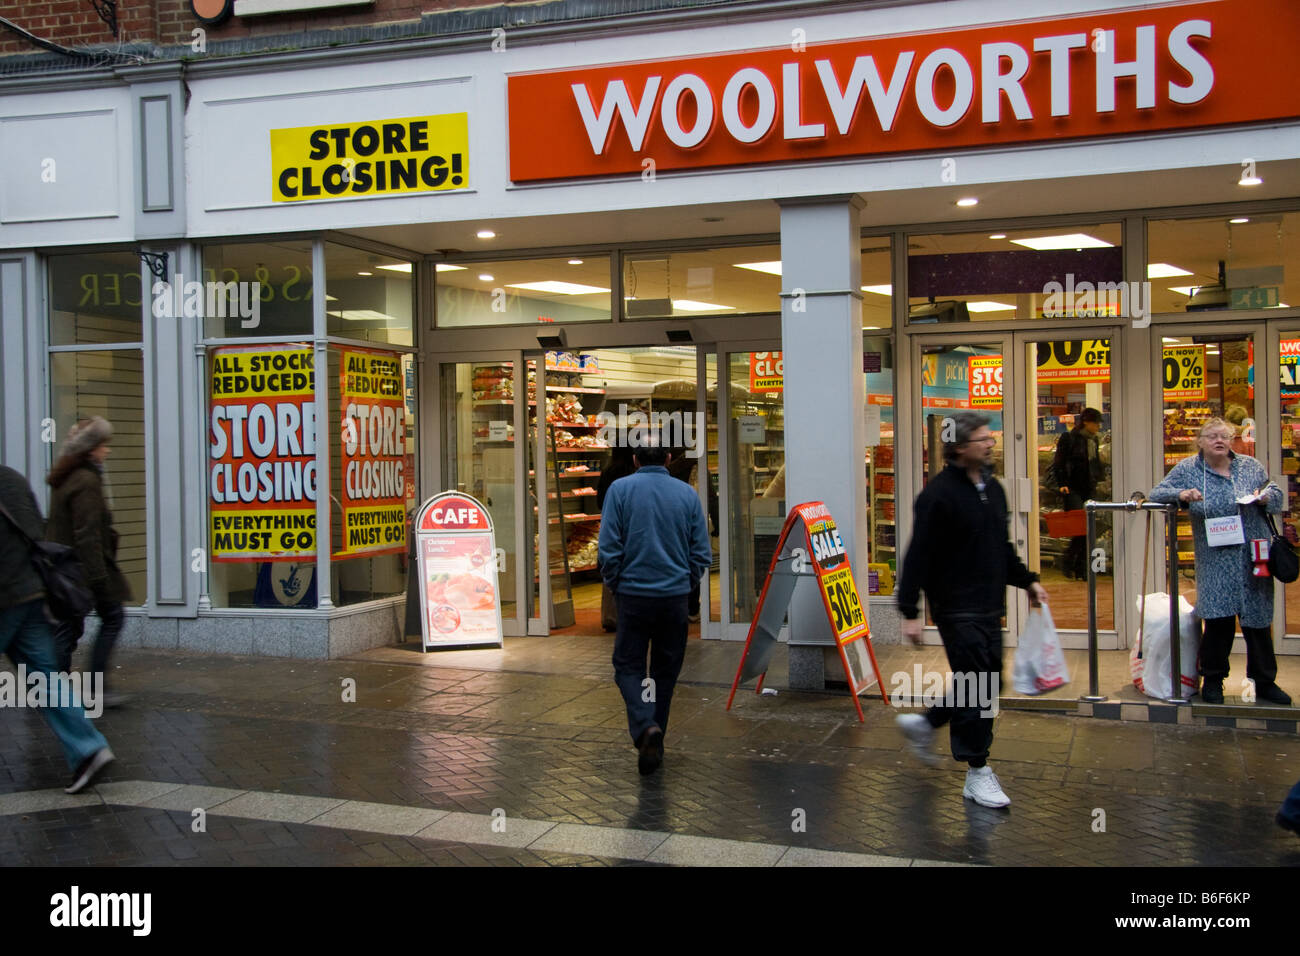 woolworths outage - photo #24